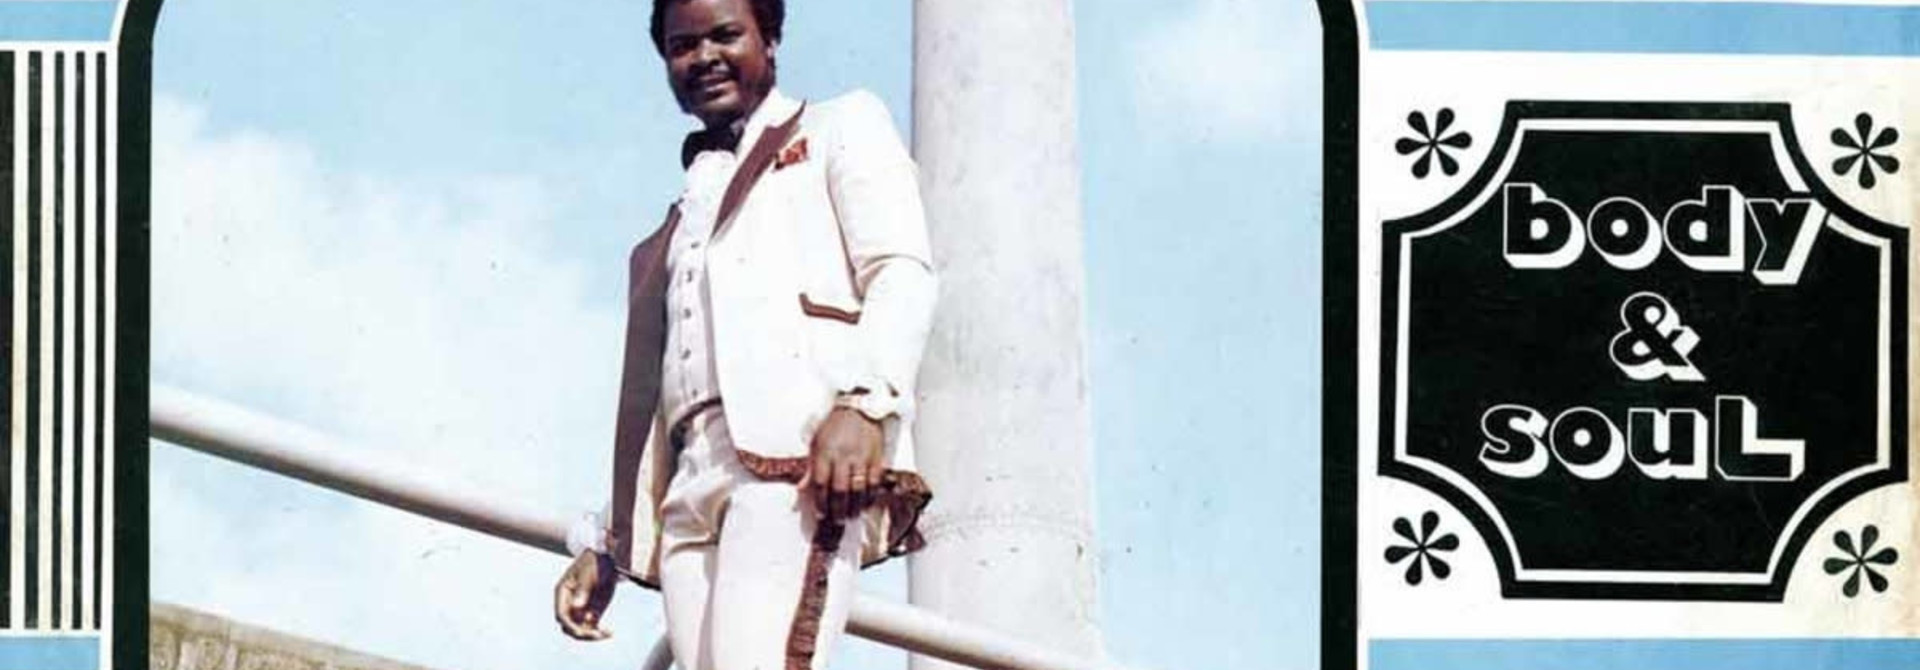 William Onyeabor • Body & Soul